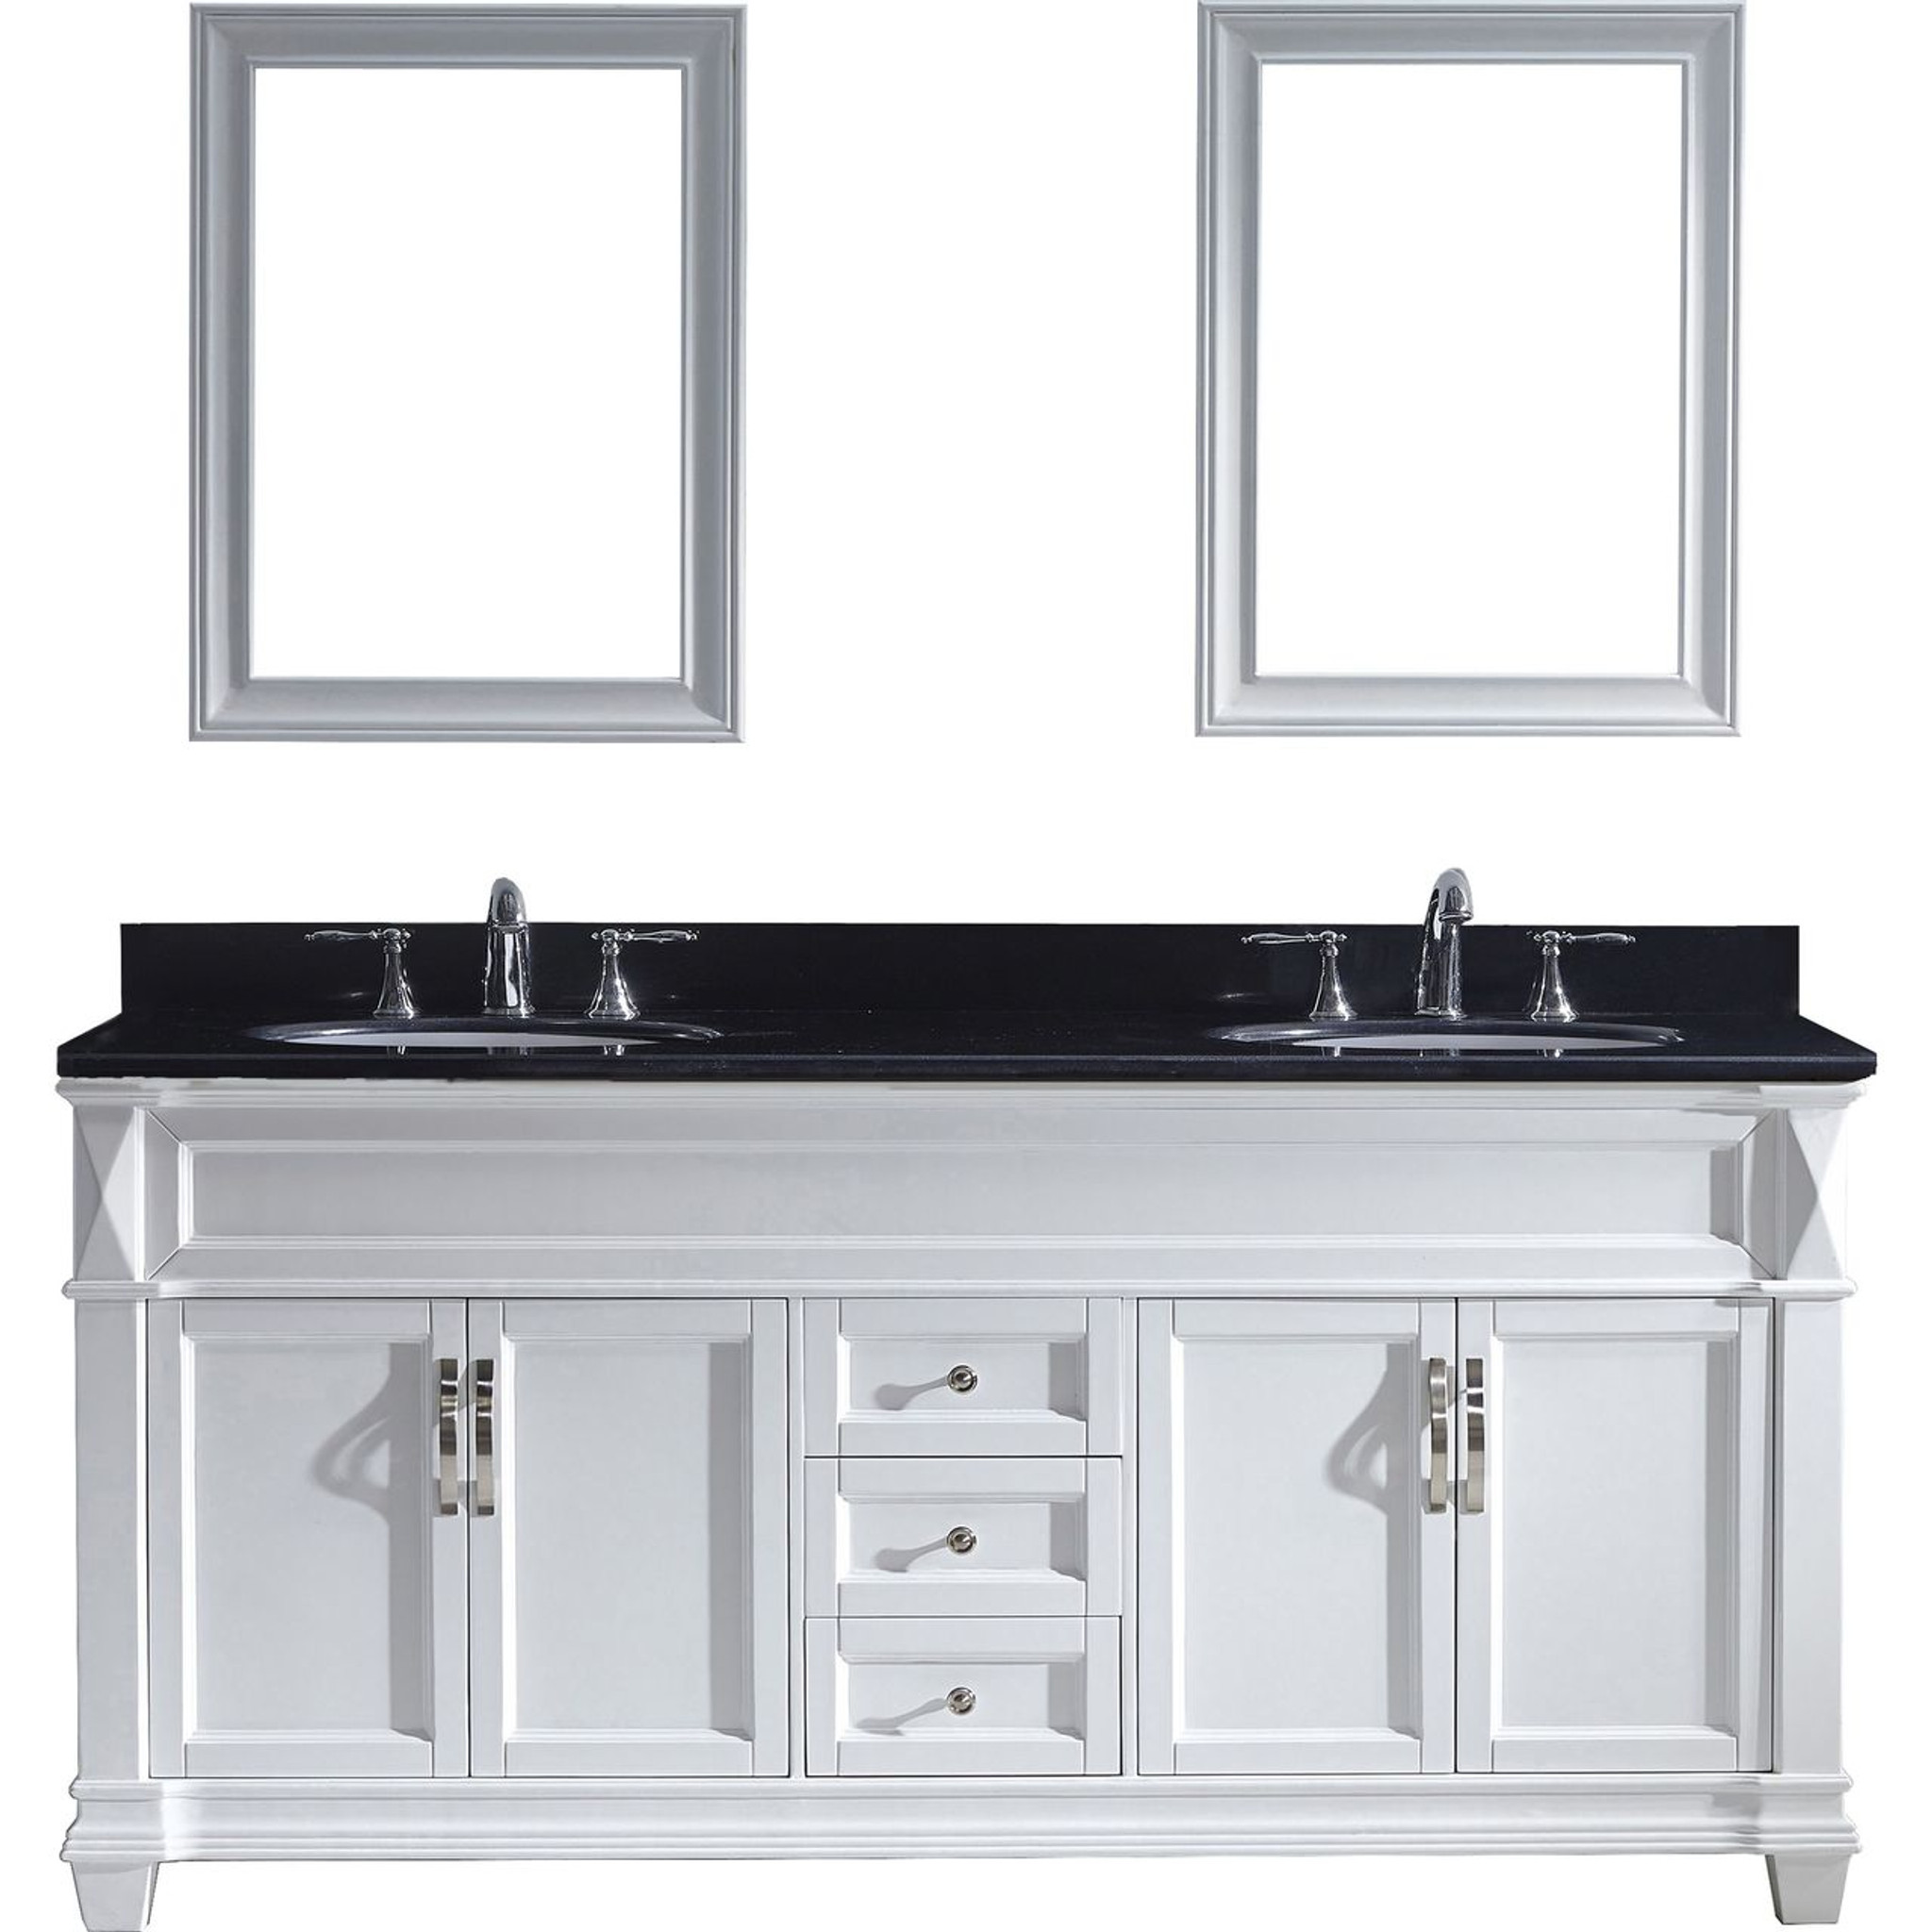 Sensational Virtu Usa Victoria 72 Double Bathroom Vanity Set In White W Black Galaxy Granite Counter Top Round Basin Home Interior And Landscaping Ponolsignezvosmurscom